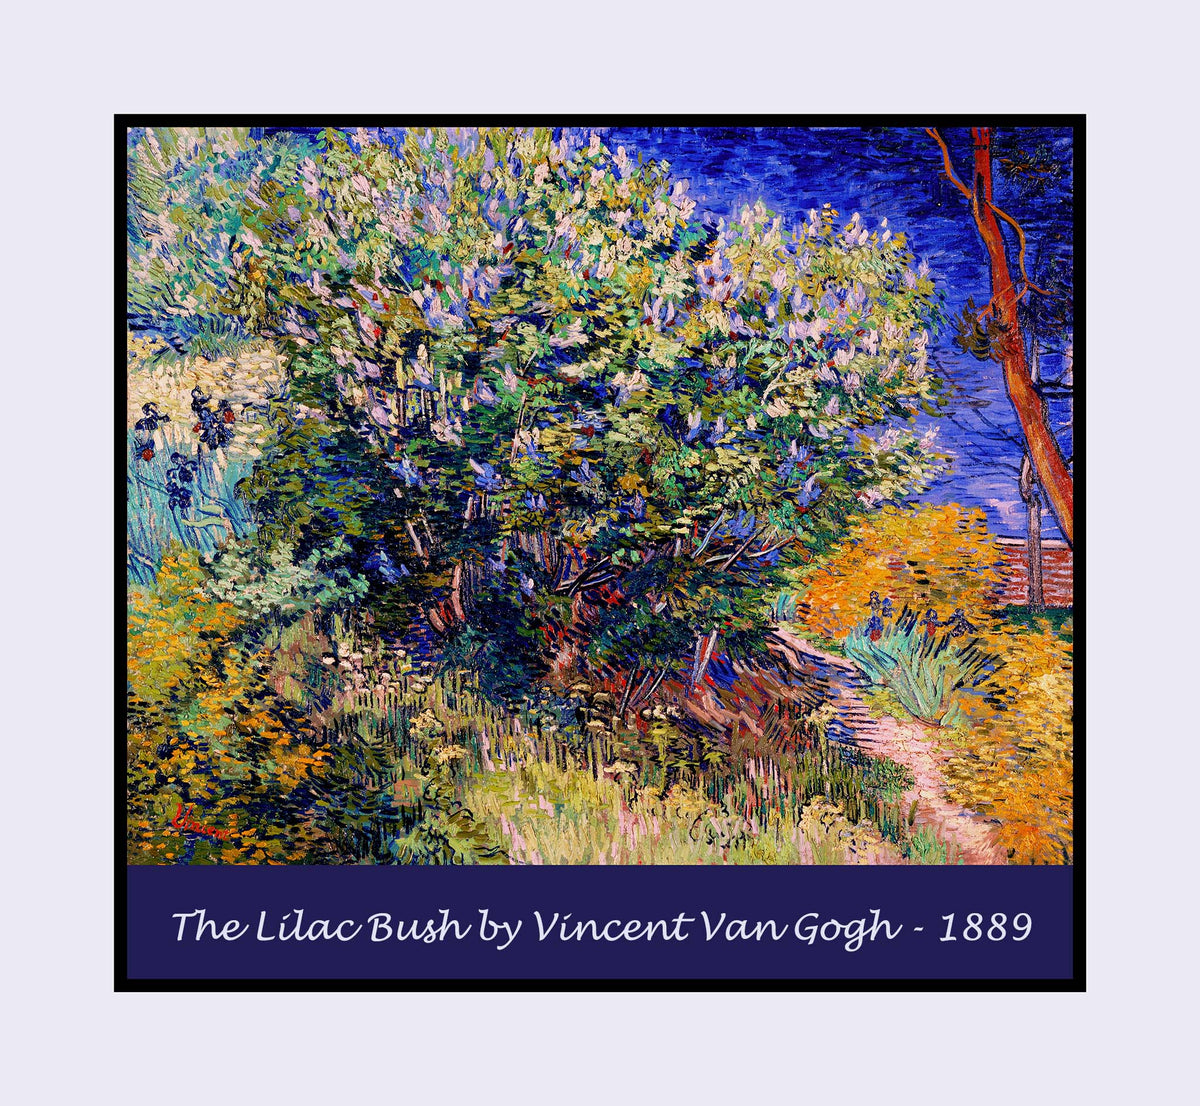 The Lilac Bush painted by Vincent Van Gogh premium poster